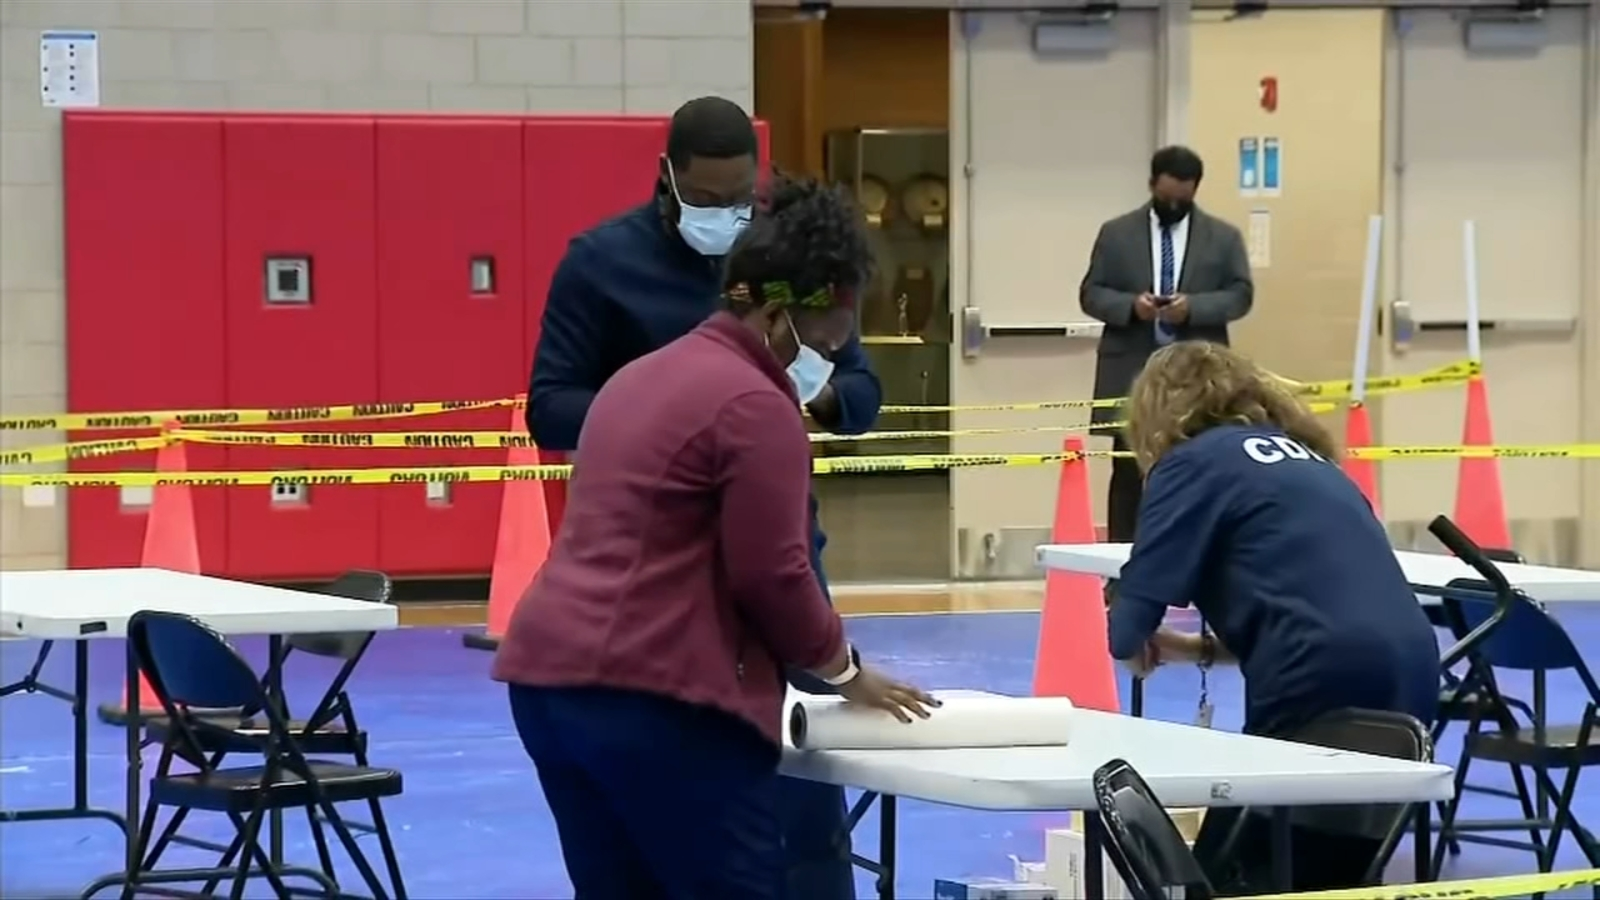 The COVID vaccine super-site has opened at Malcolm X College in Chicago for non-hospital healthcare workers